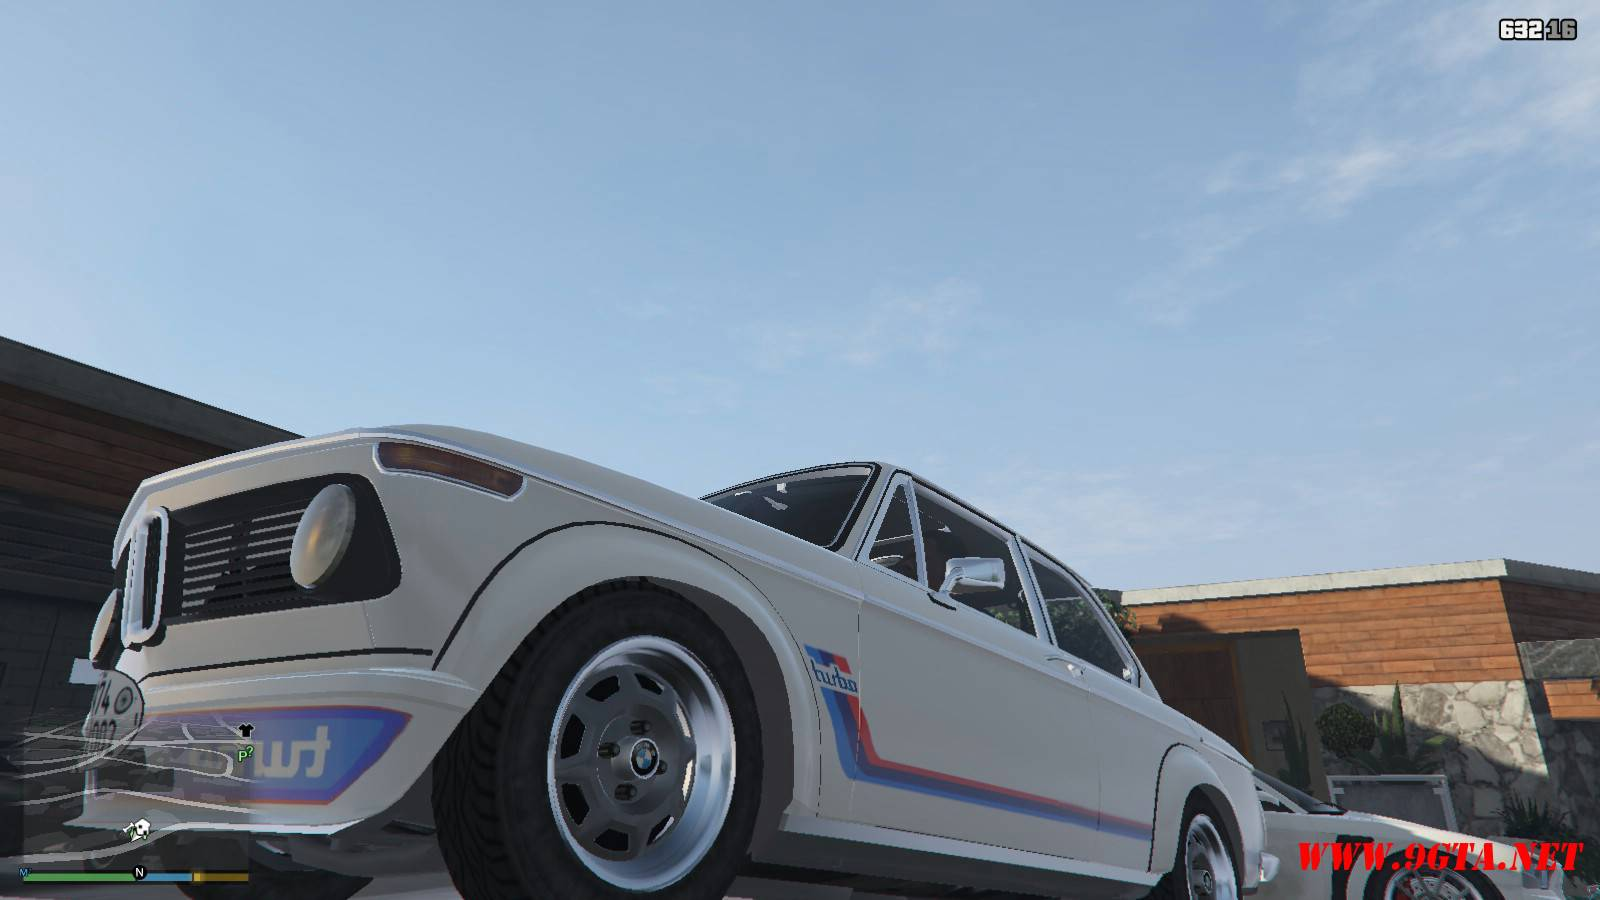 2002 BMW Turbo Mod For GTA5 (3)